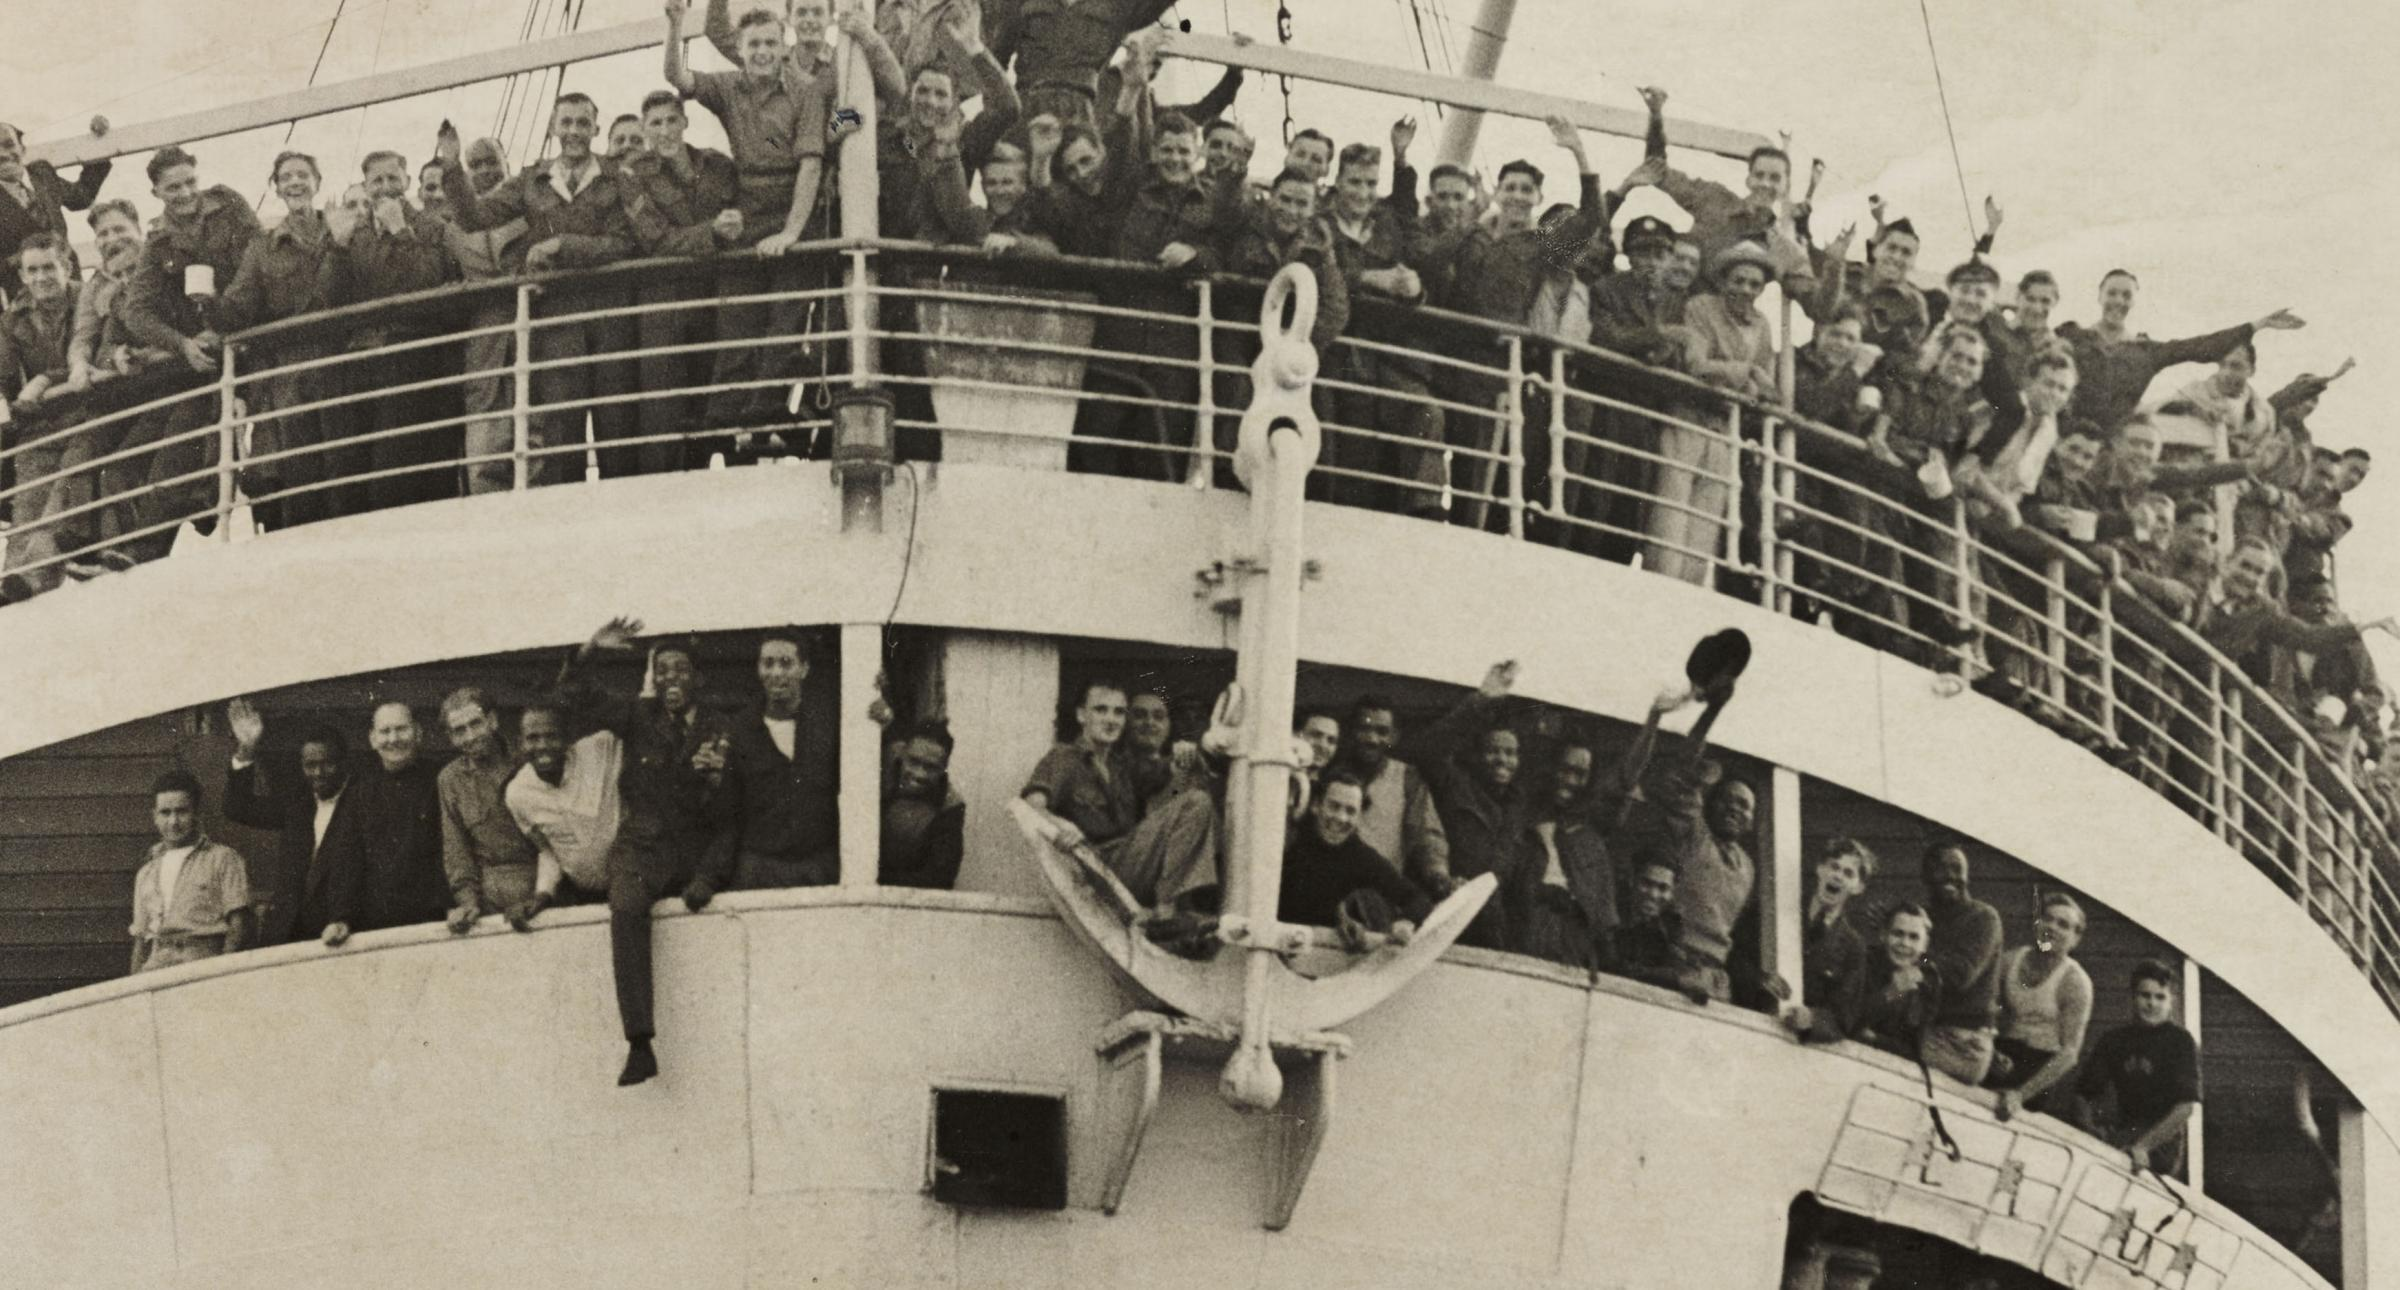 The Windrush generation arrived in the UK between 1948 and 1974